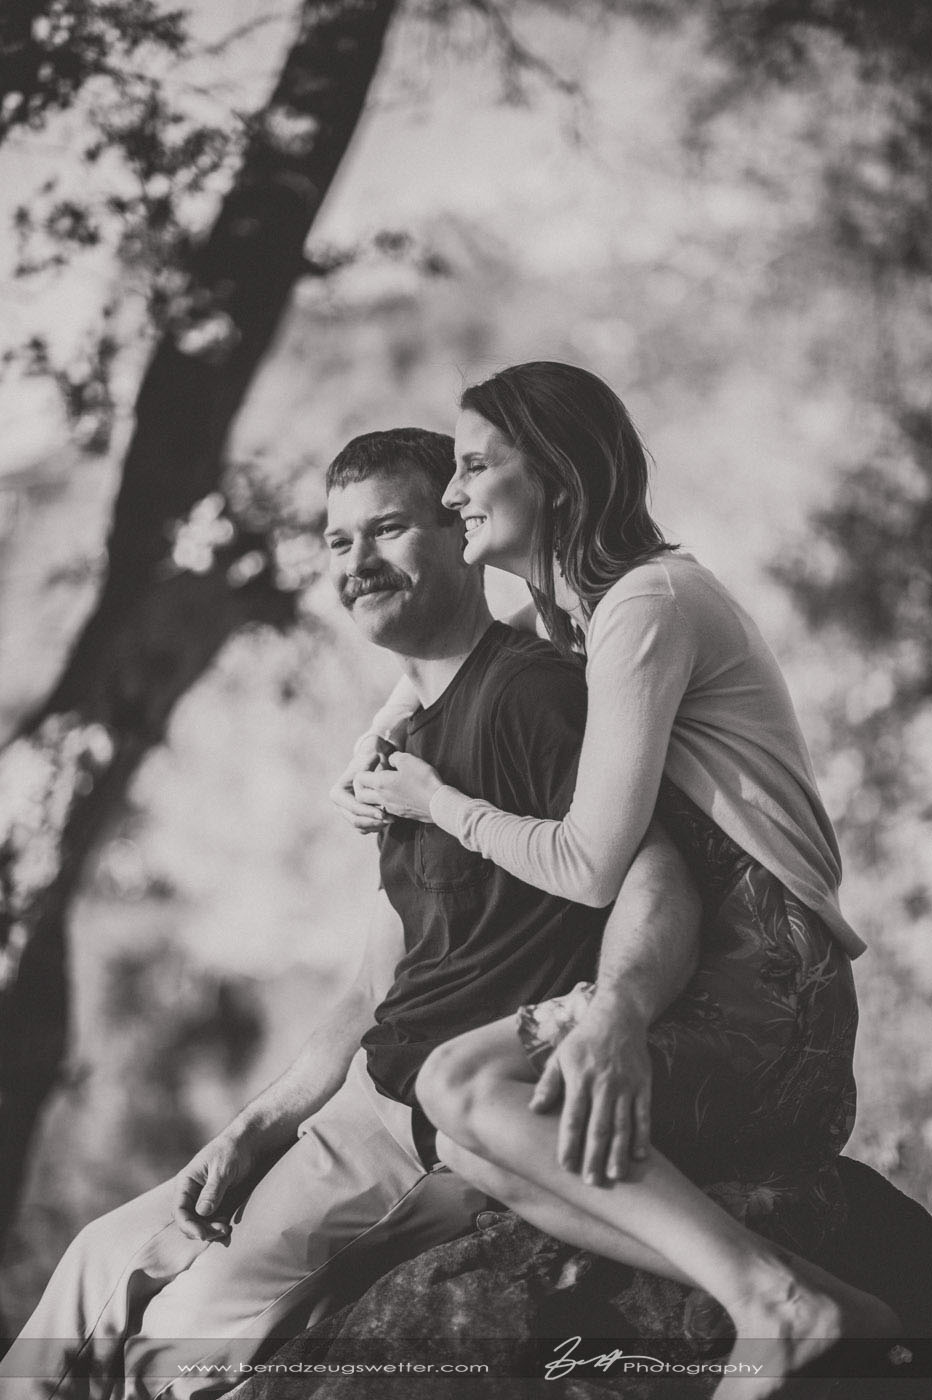 Engagement photos at the Santa Barbara Botanic Gardens.